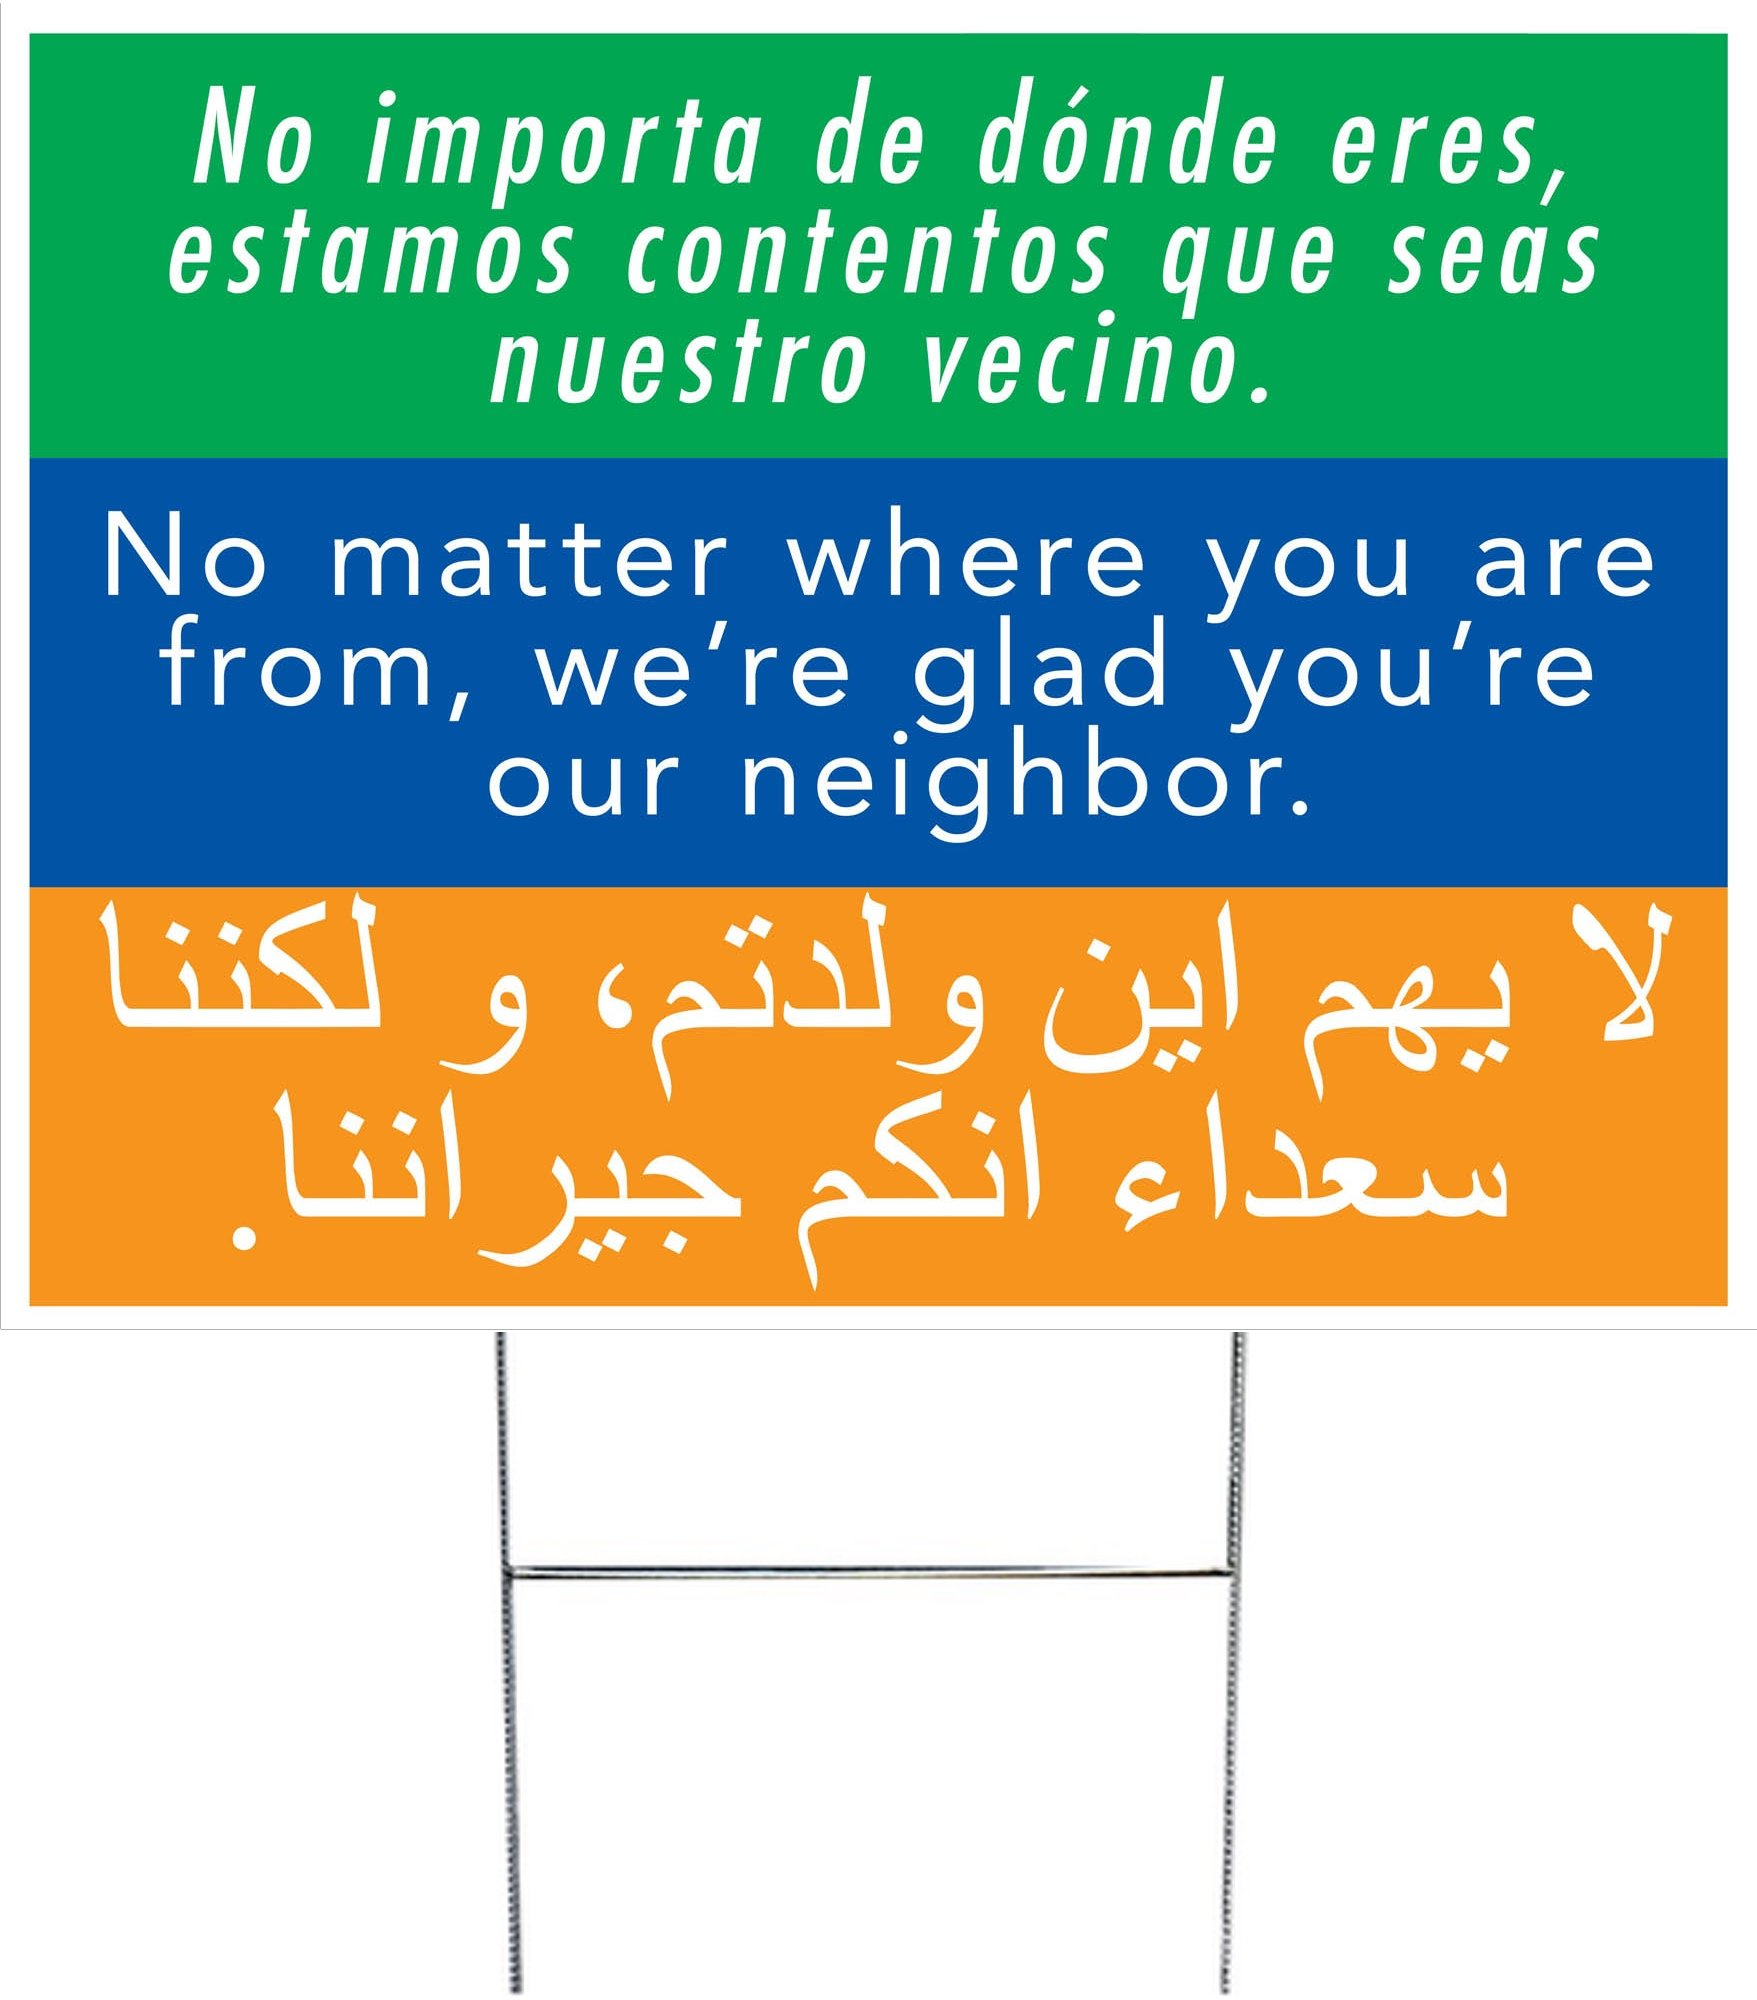 We're Glad You're Our Neighbor Yard Sign (Double-sided with H-stake) by Peace Supplies